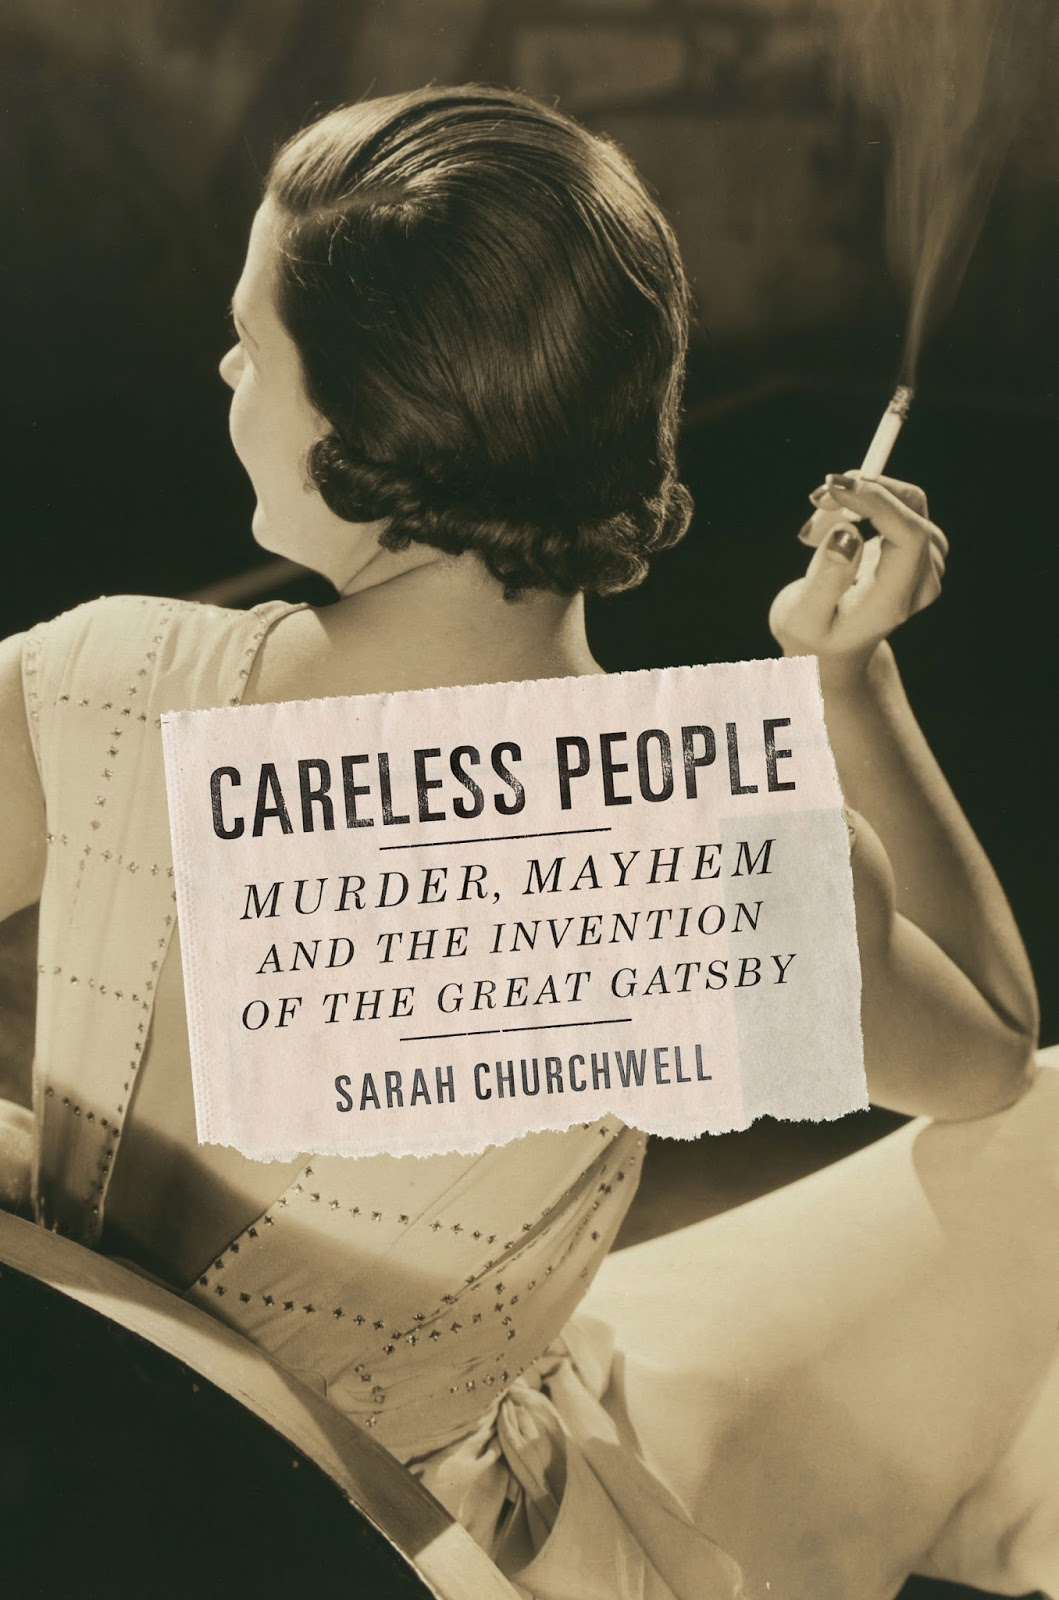 invention of gatsby Careless people: murder, mayhem, and the invention of the great gatsby by sarah churchwell and a great selection of similar used, new and collectible books available now at abebookscom.